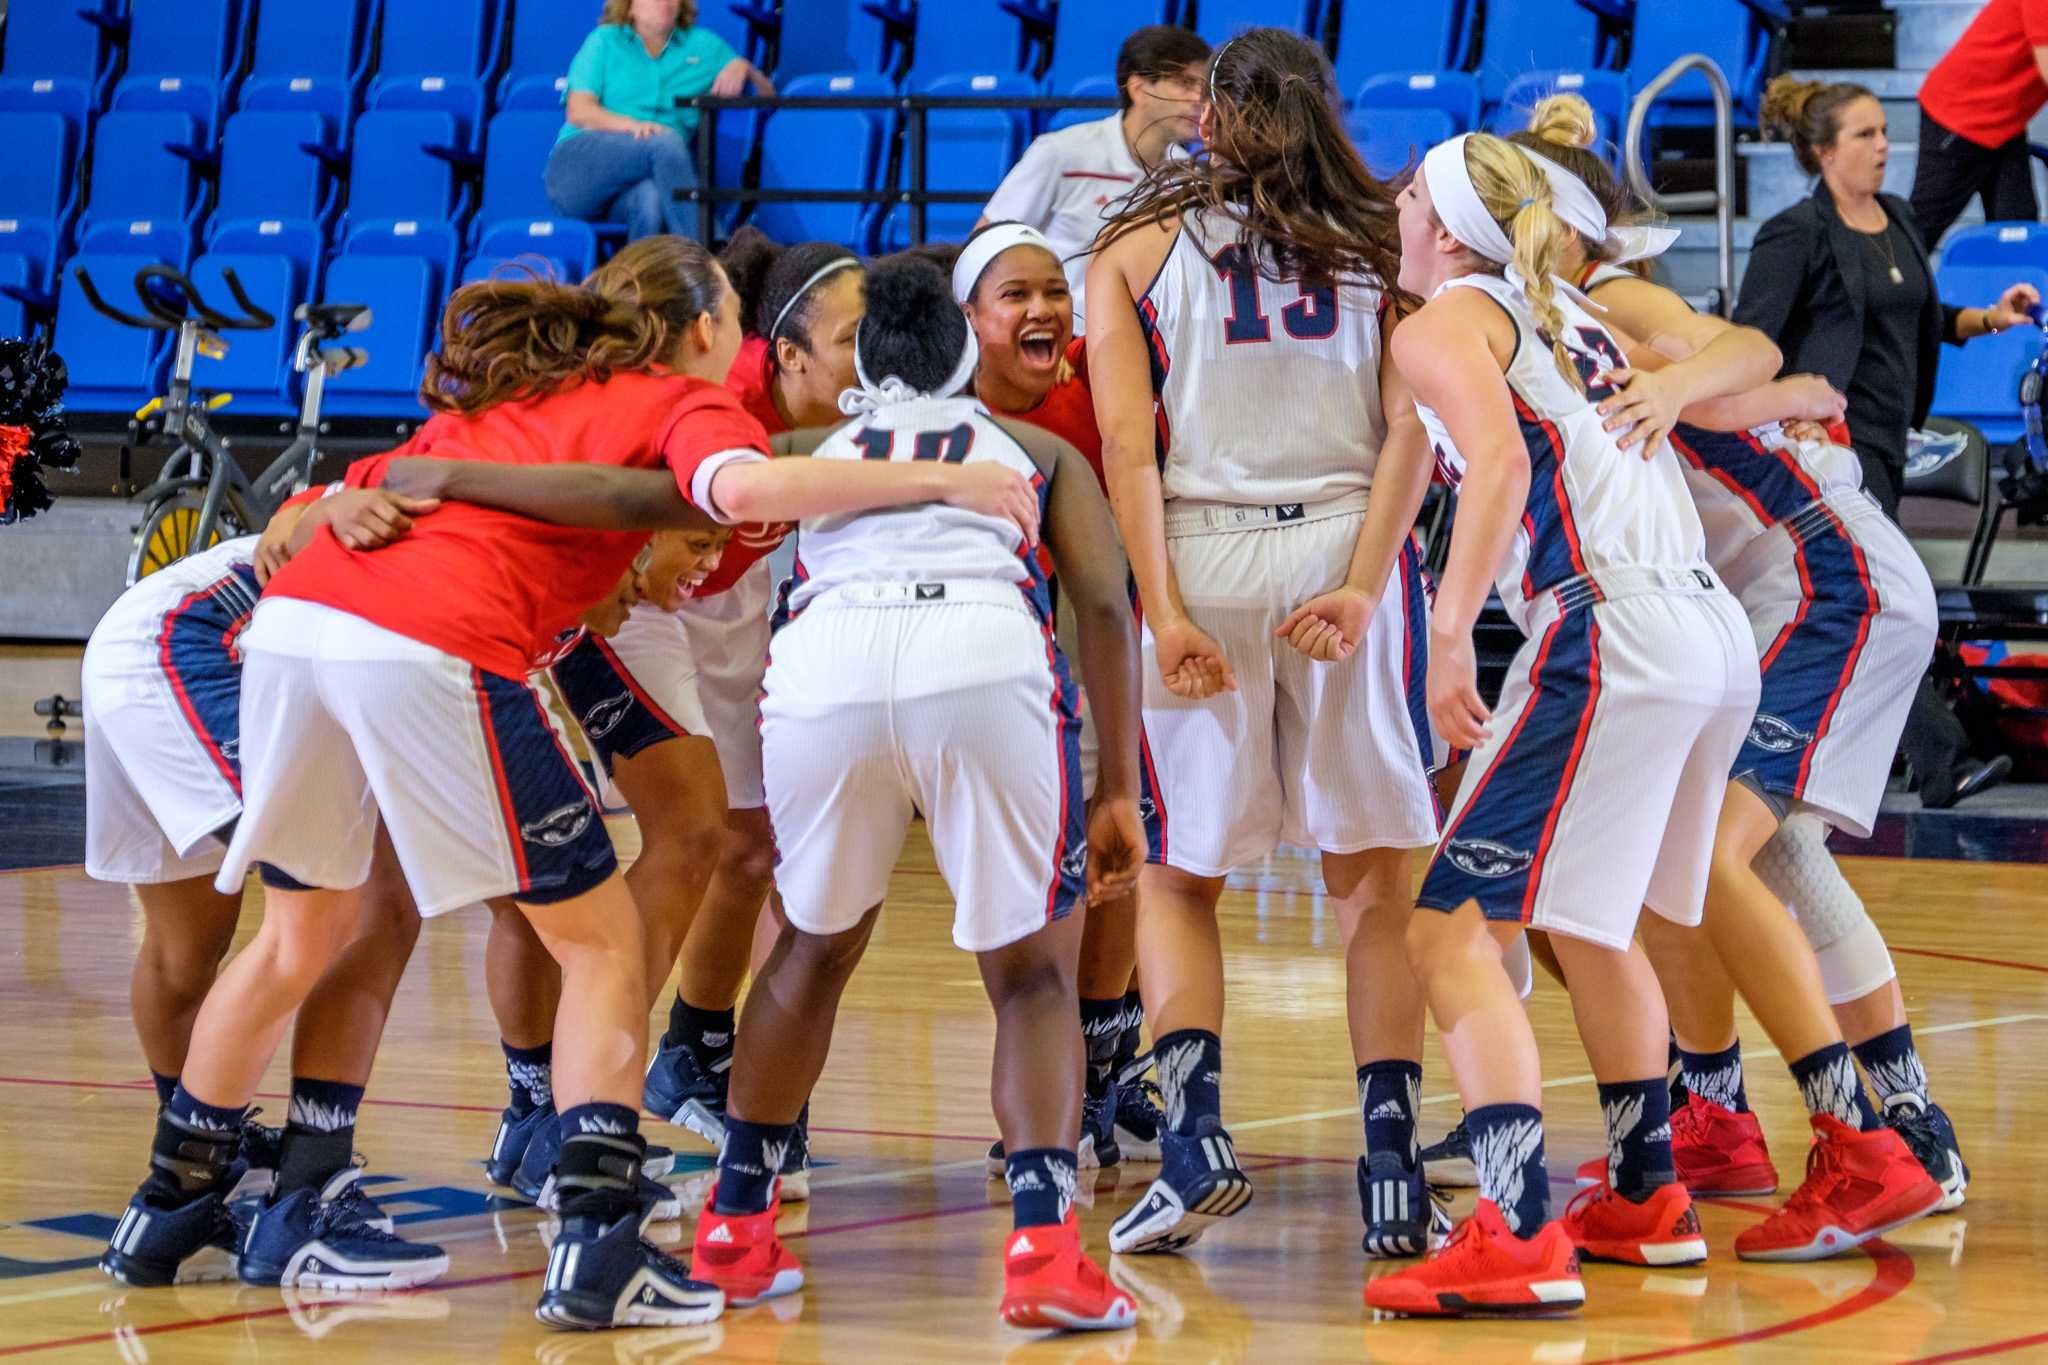 The FAU women's basketball team prepares to take the court before their game on Dec. 29 versus Bethune-Cookman. Mohammed F. Emran | Staff Photographer